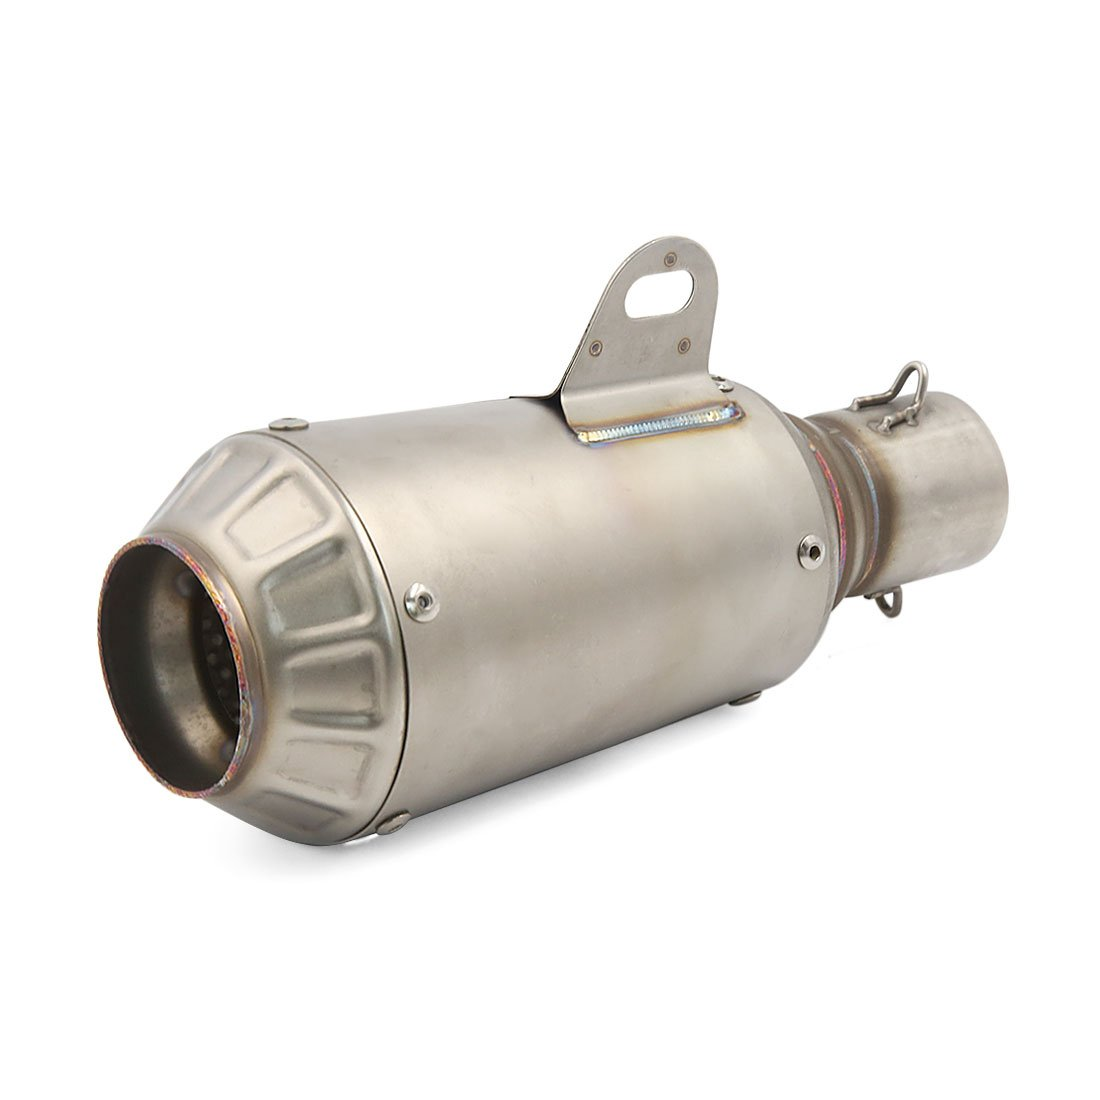 uxcell 51mm Inlet Gray Grenade Shaped Exhaust Pipe Muffler Silencer for Motorbike Street Dirt Bike